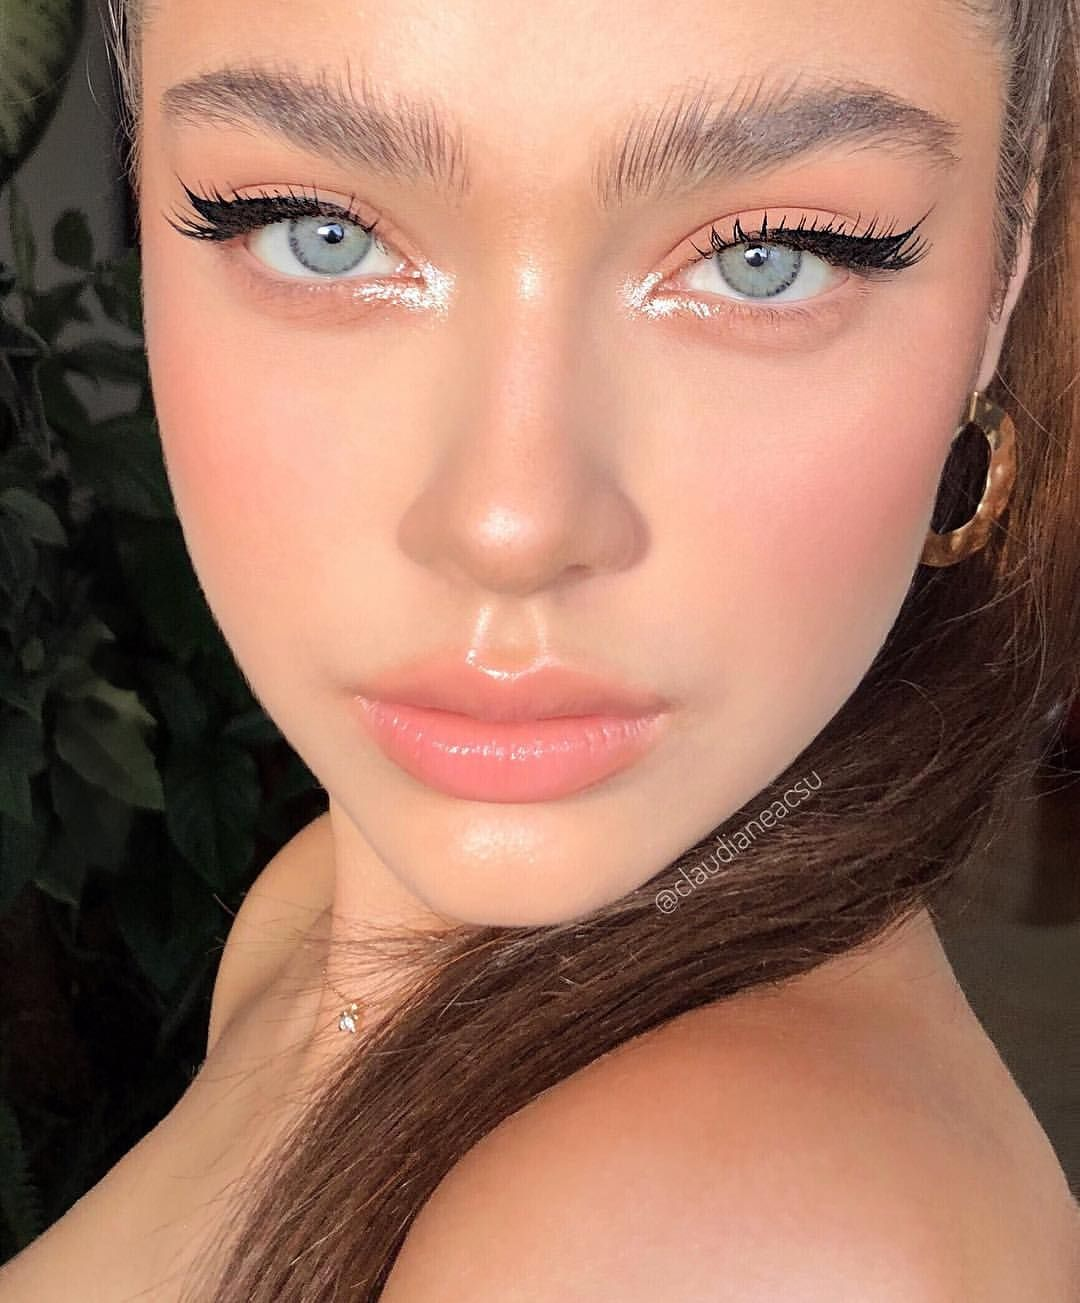 25 2k Likes 179 Comments Claudia Neacsu Claudianeacsu On Instagram Simplicity Is My Thing In Cadrul Masterc Makeup Looks Beauty Makeup Pretty Makeup